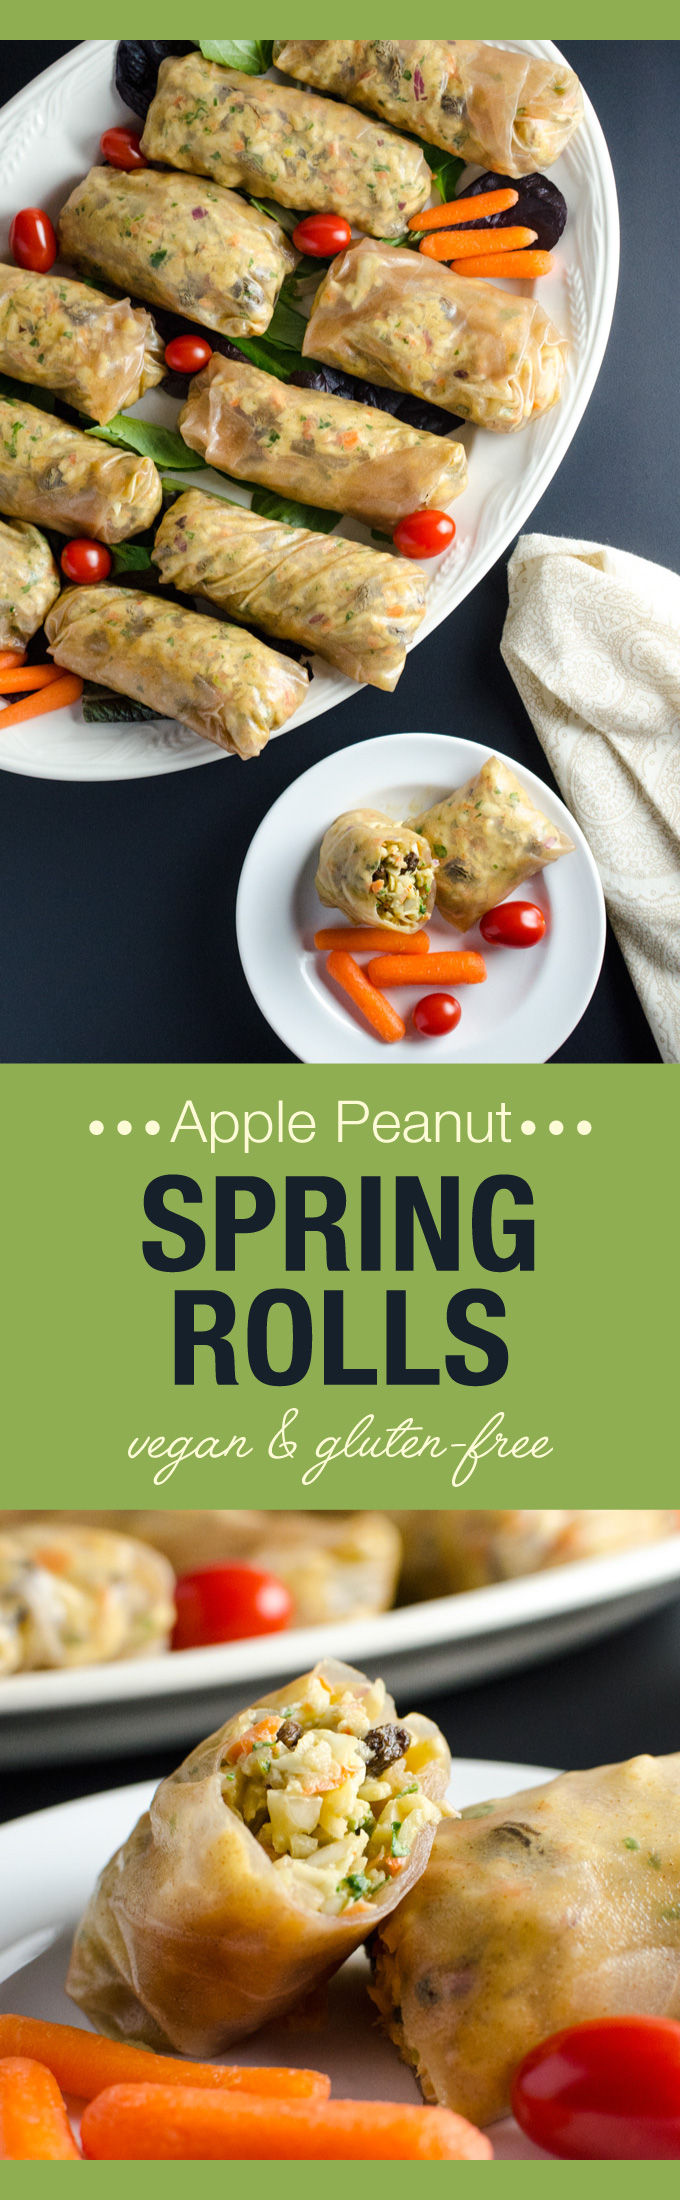 Apple Peanut Spring Rolls - this easy raw vegan and glutenfree recipe offers a lovely blend of textures and sweet spicy flavors - perfect plantbased Super Bowl fare | VeggiePrimer.com